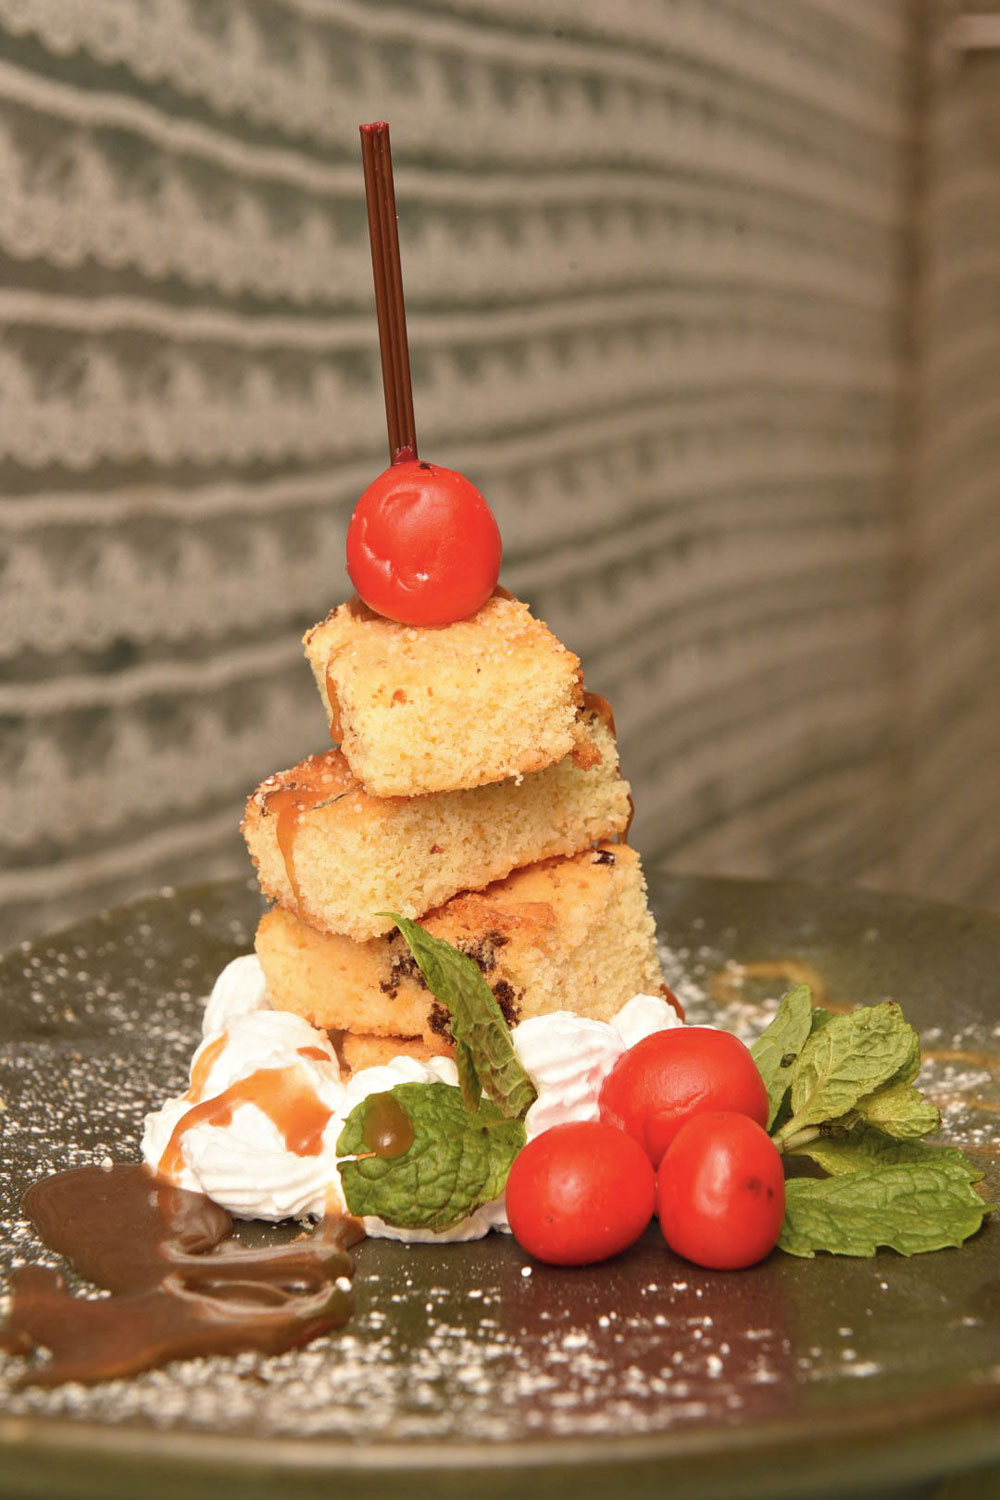 Rose Blondie with Salted Caramel Sauce